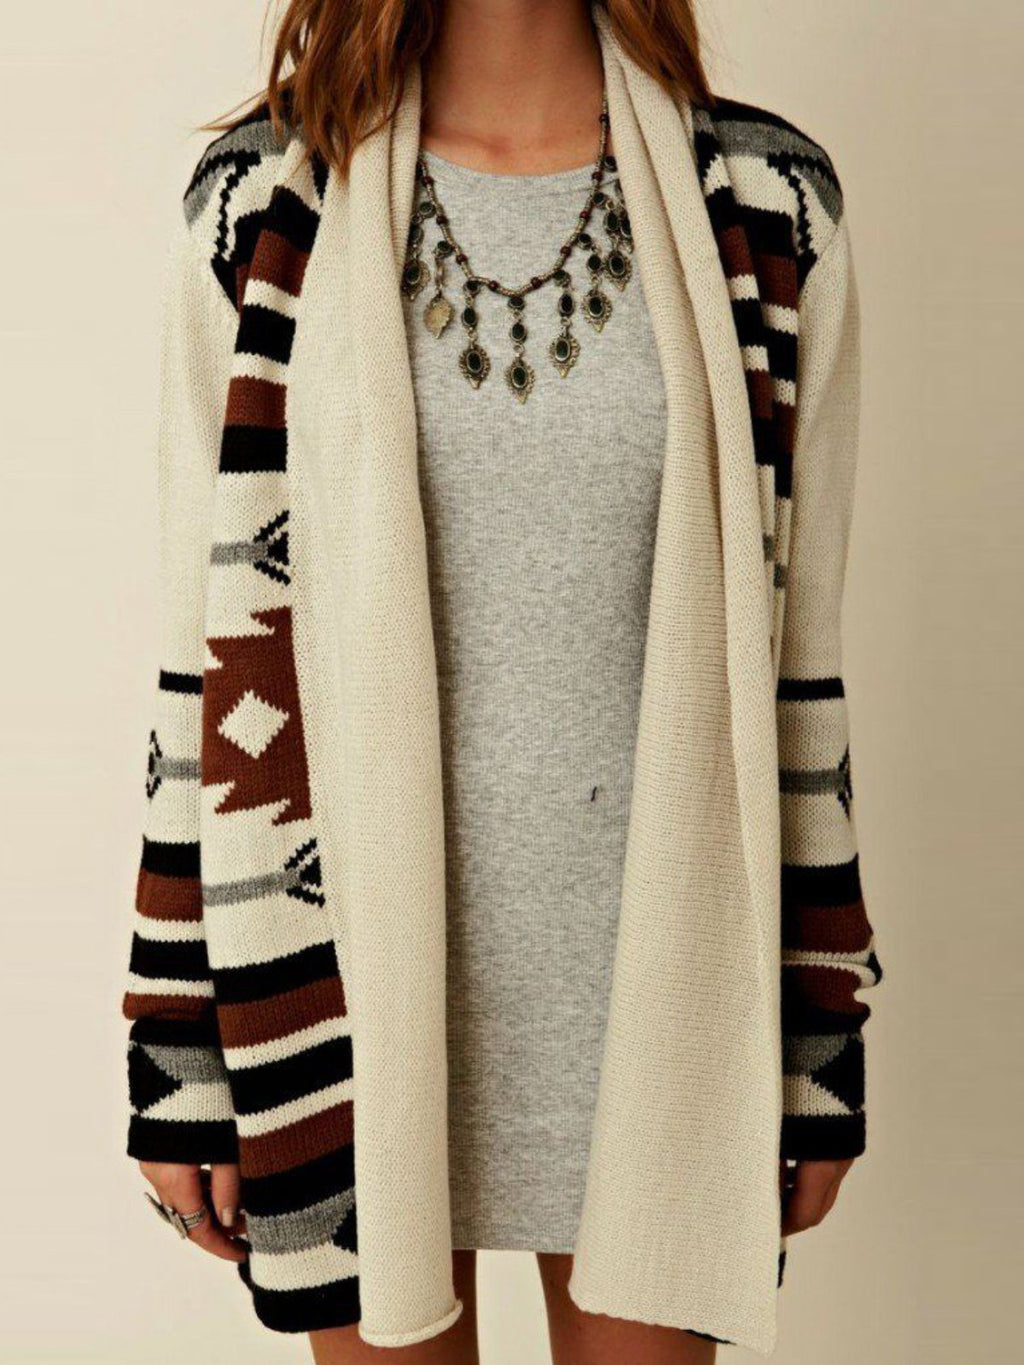 Beige Printed/dyed Long Sleeve Casual Knitted Outerwear